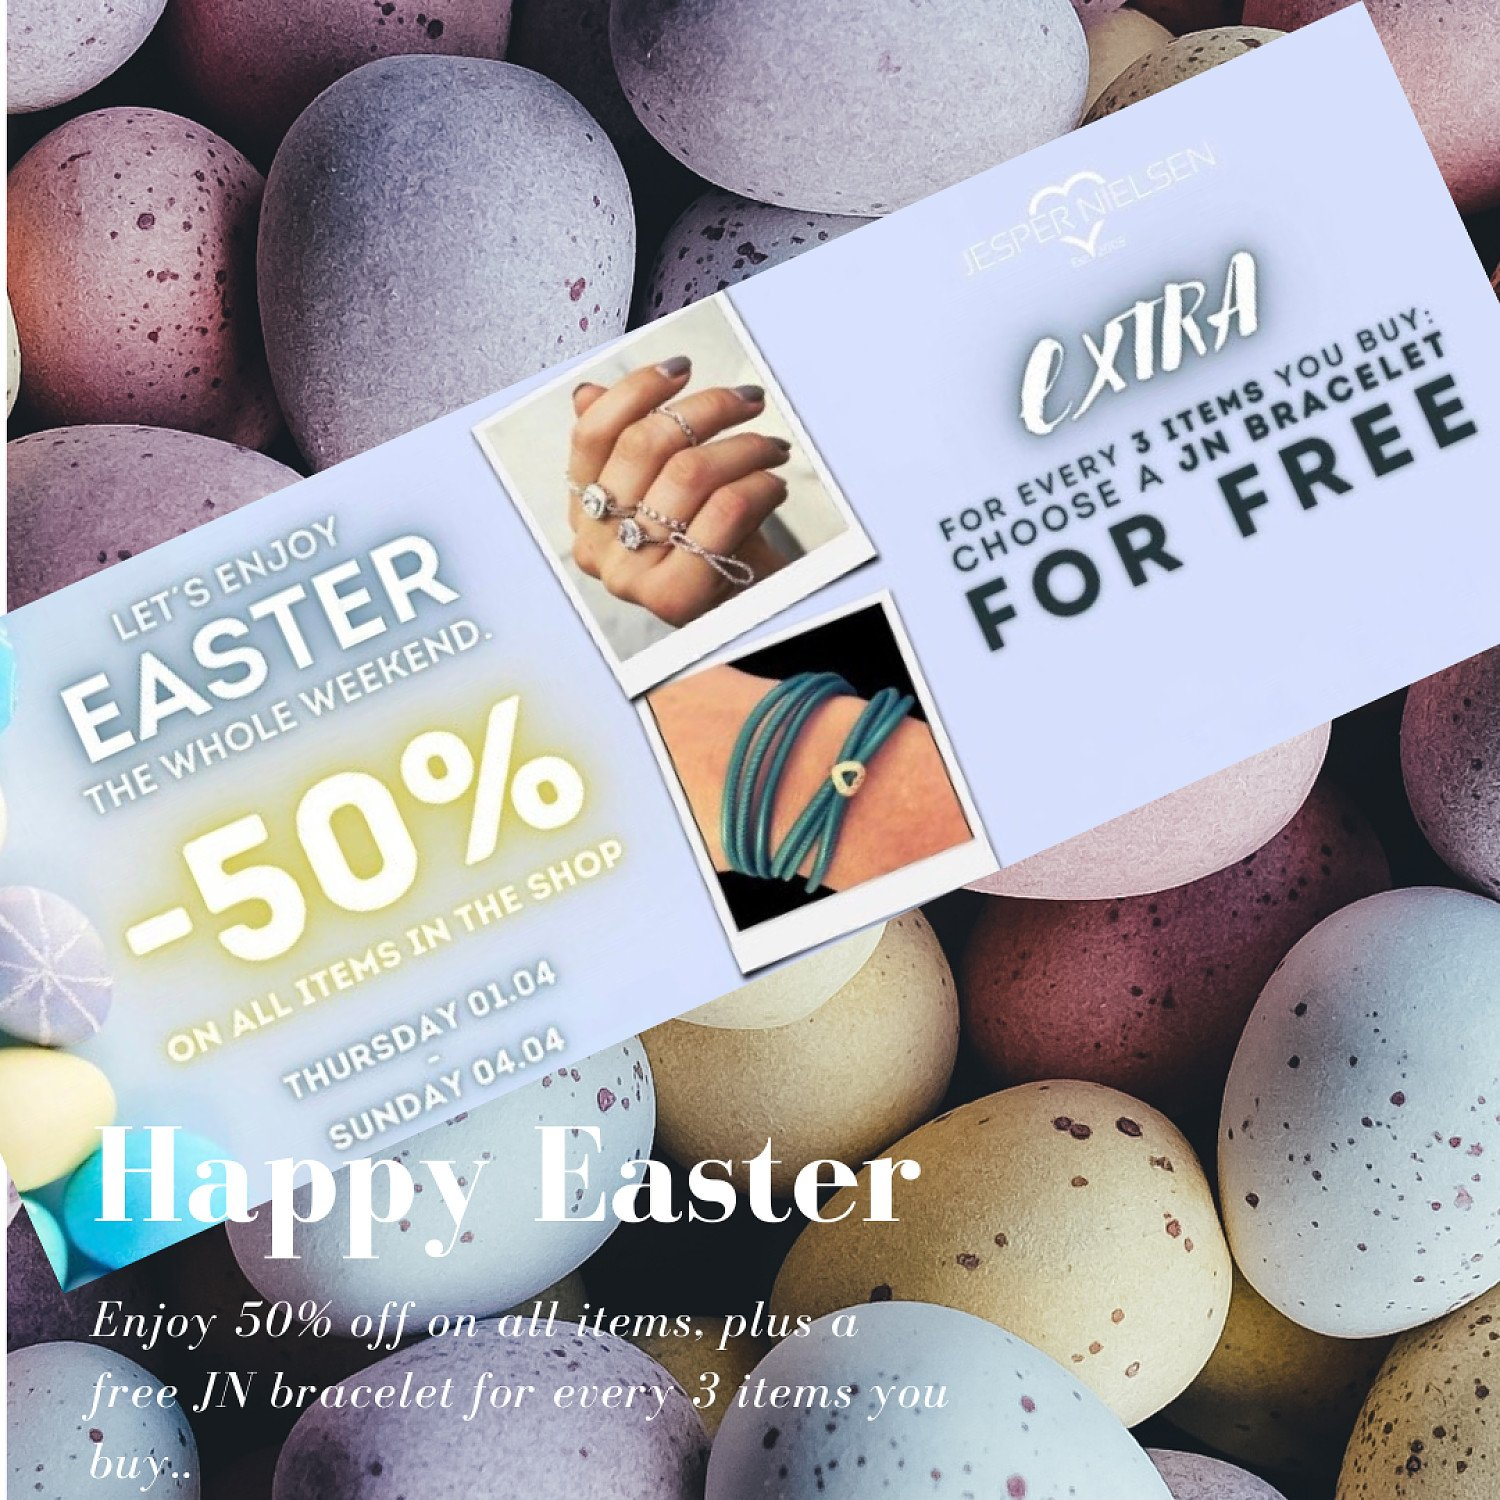 50% discount on all items for Easter Weekend